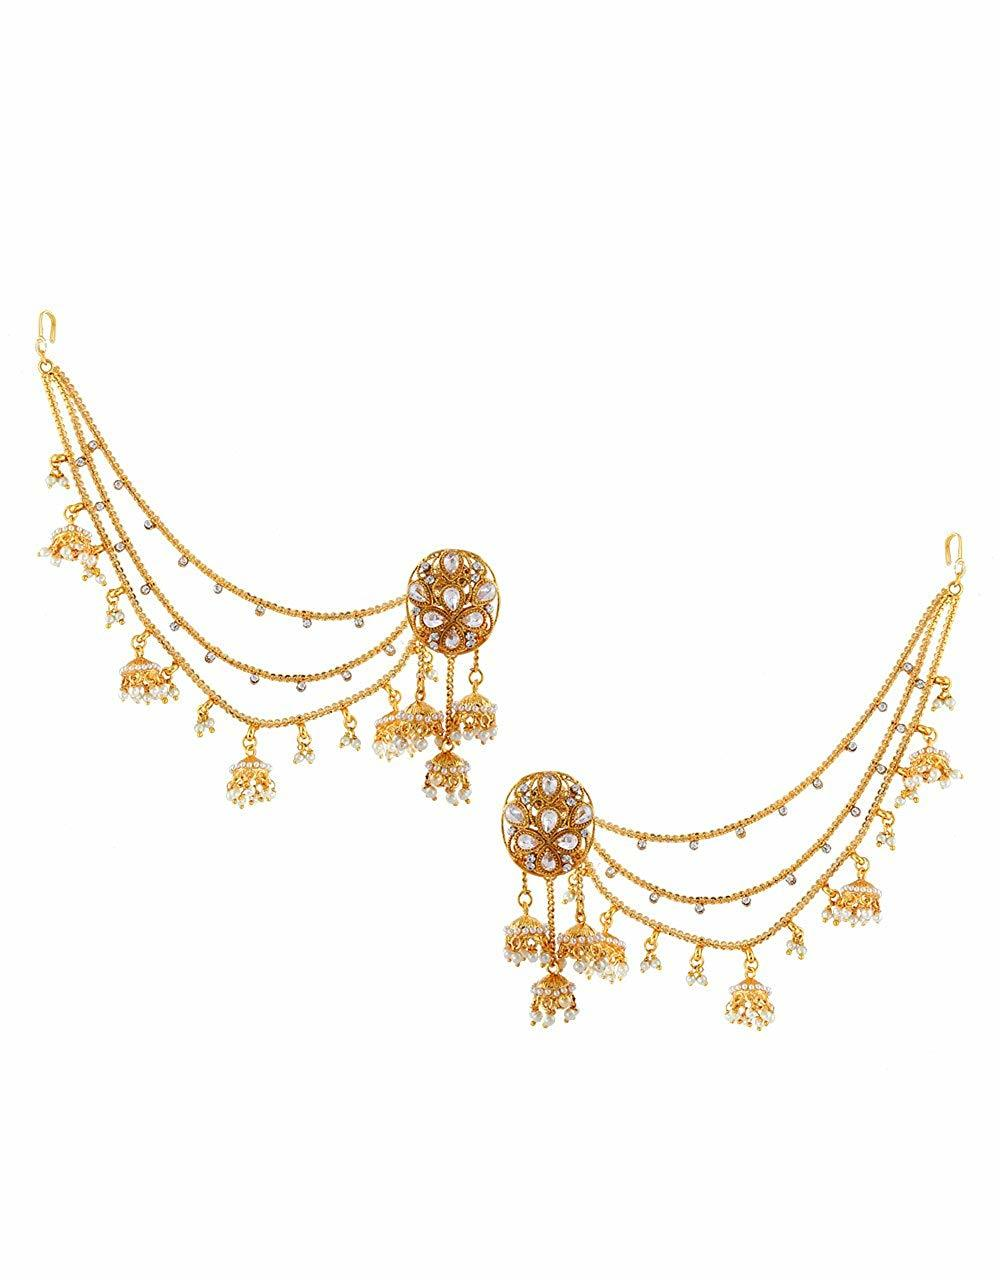 Antique Gold Finish Traditional Zhumki With Ear Chain For Wedding